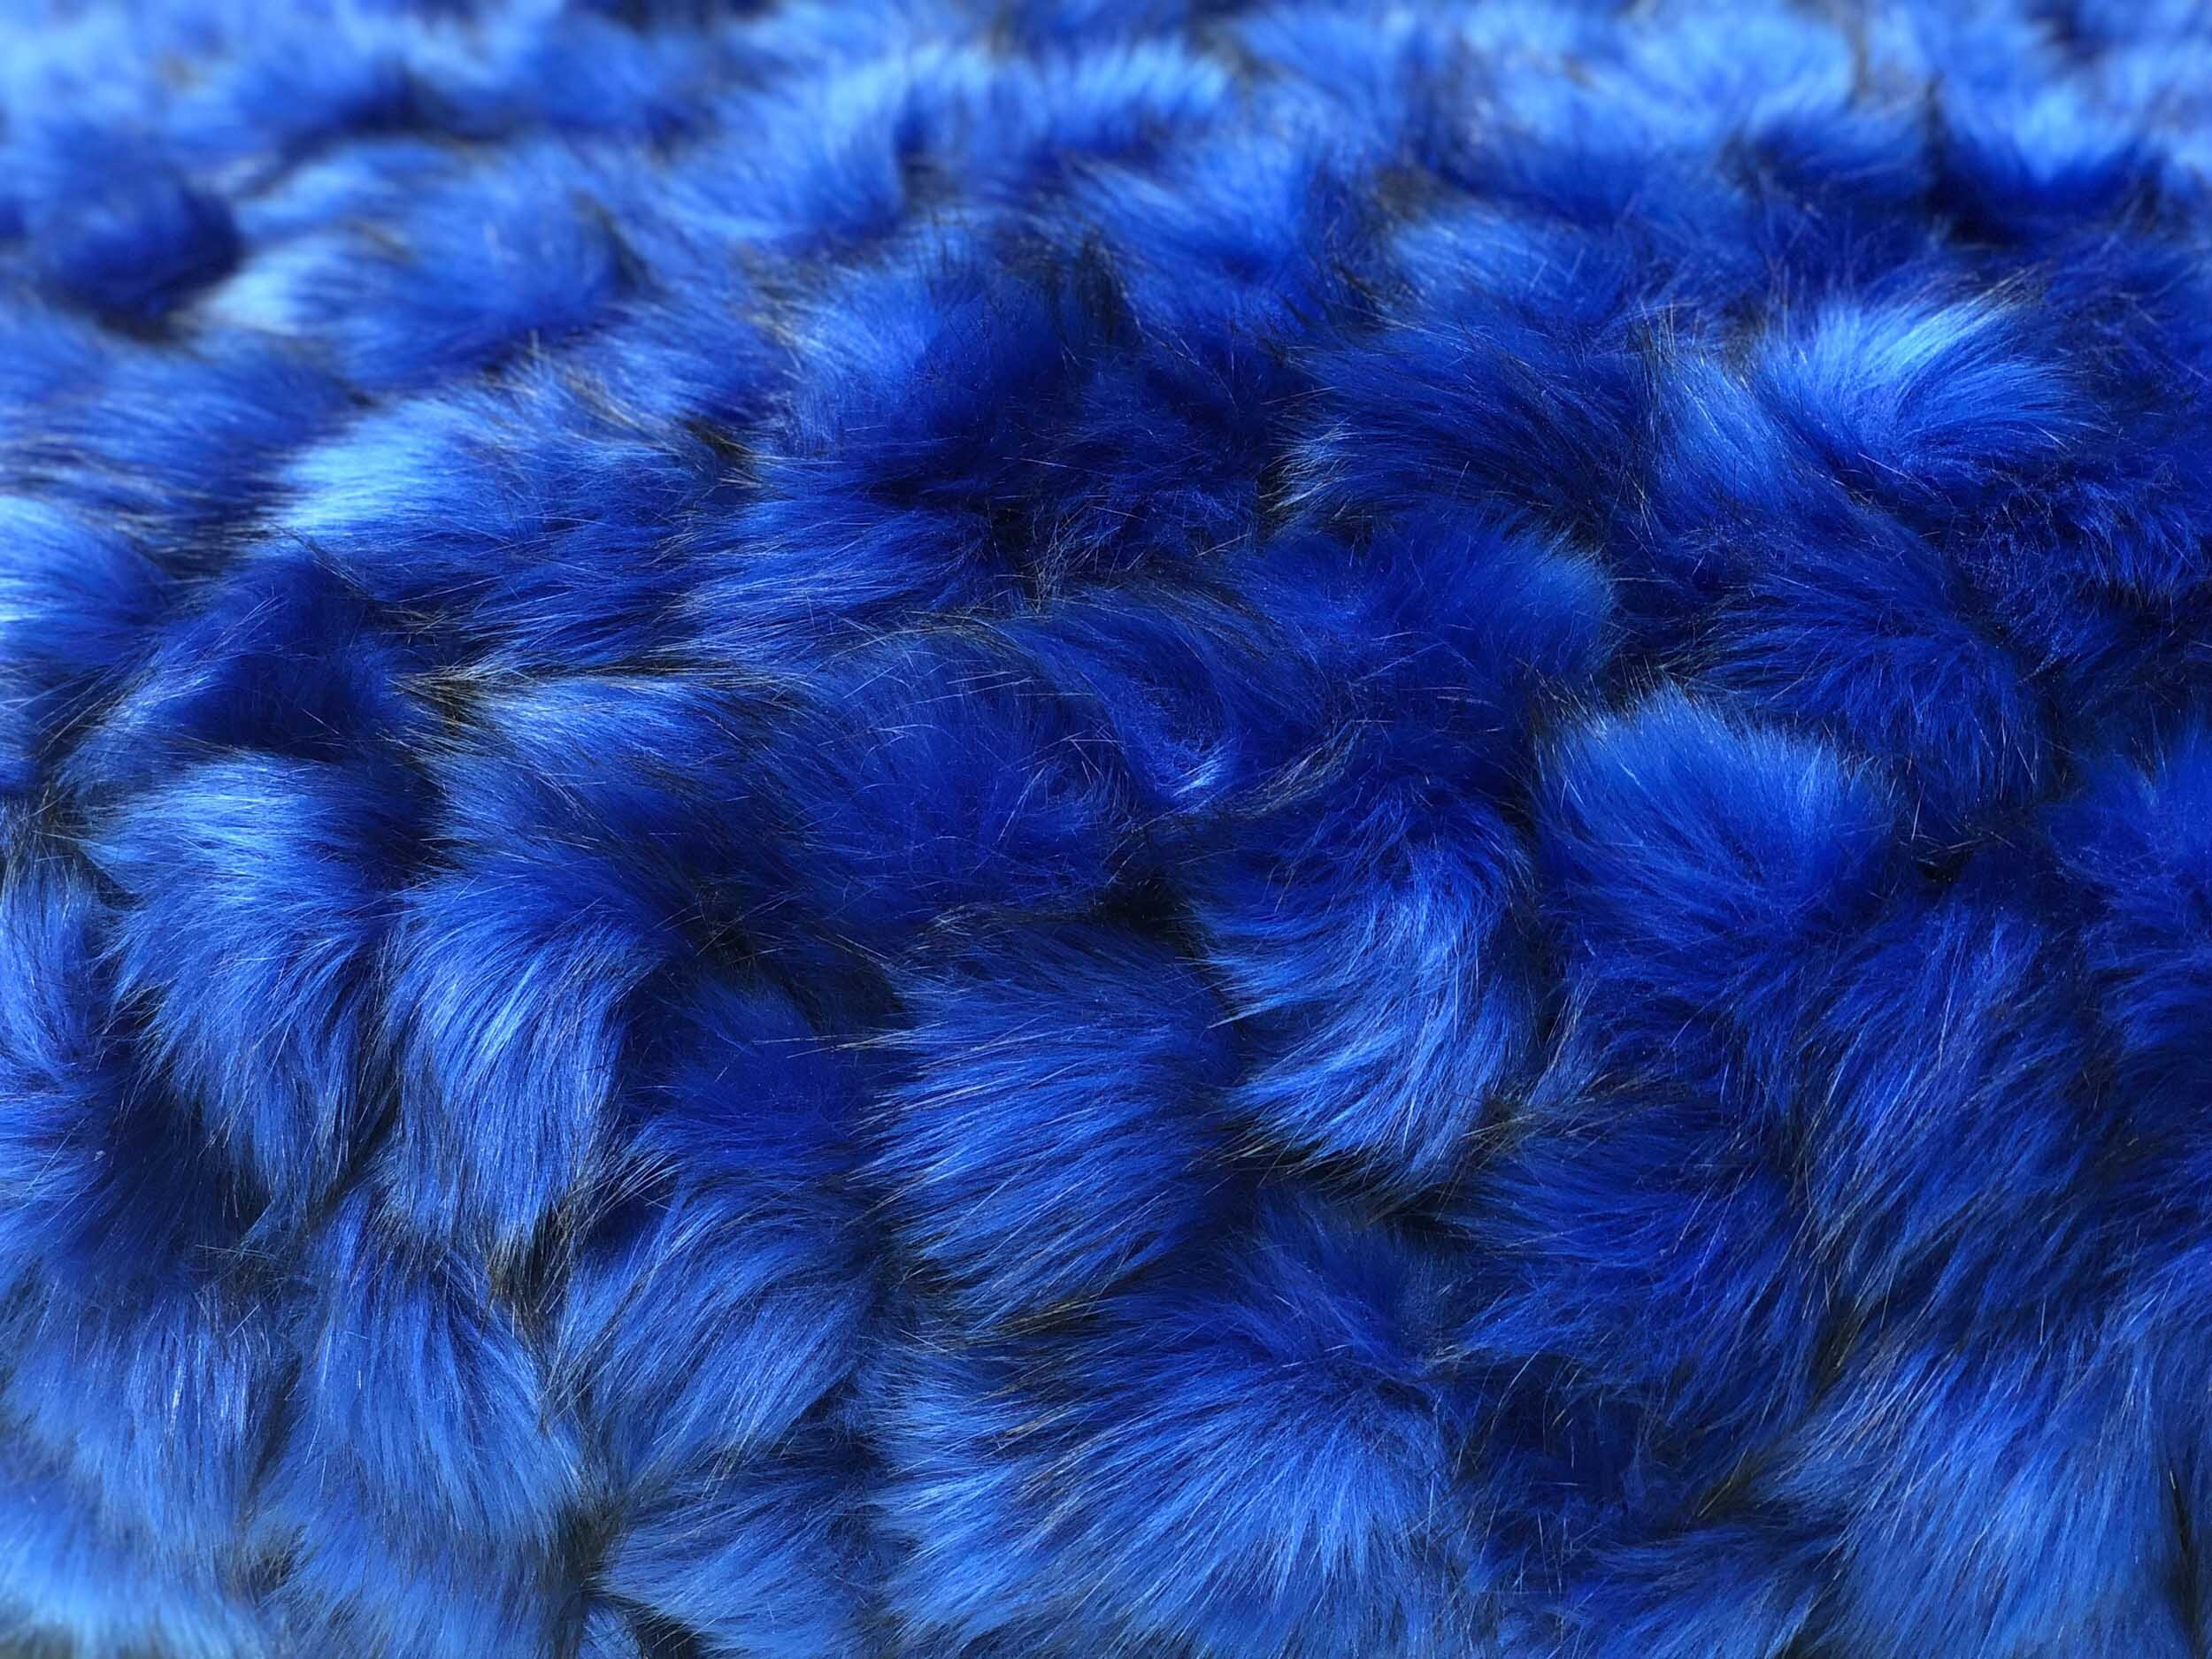 """Ryan Gander ,  Het Spel (My neotonic contribution to Modernism) , 2019,  An enlarged and inflated version of George Vantongerloo's  Komposition Aus Dem Ovoid (Composition from the ovoid)  (1918), covered in blue, artificial fur balls , 144"""" x 80 ½"""" x 75"""" (365,8 x 204,5 x 190,5 cm) (Detail)"""